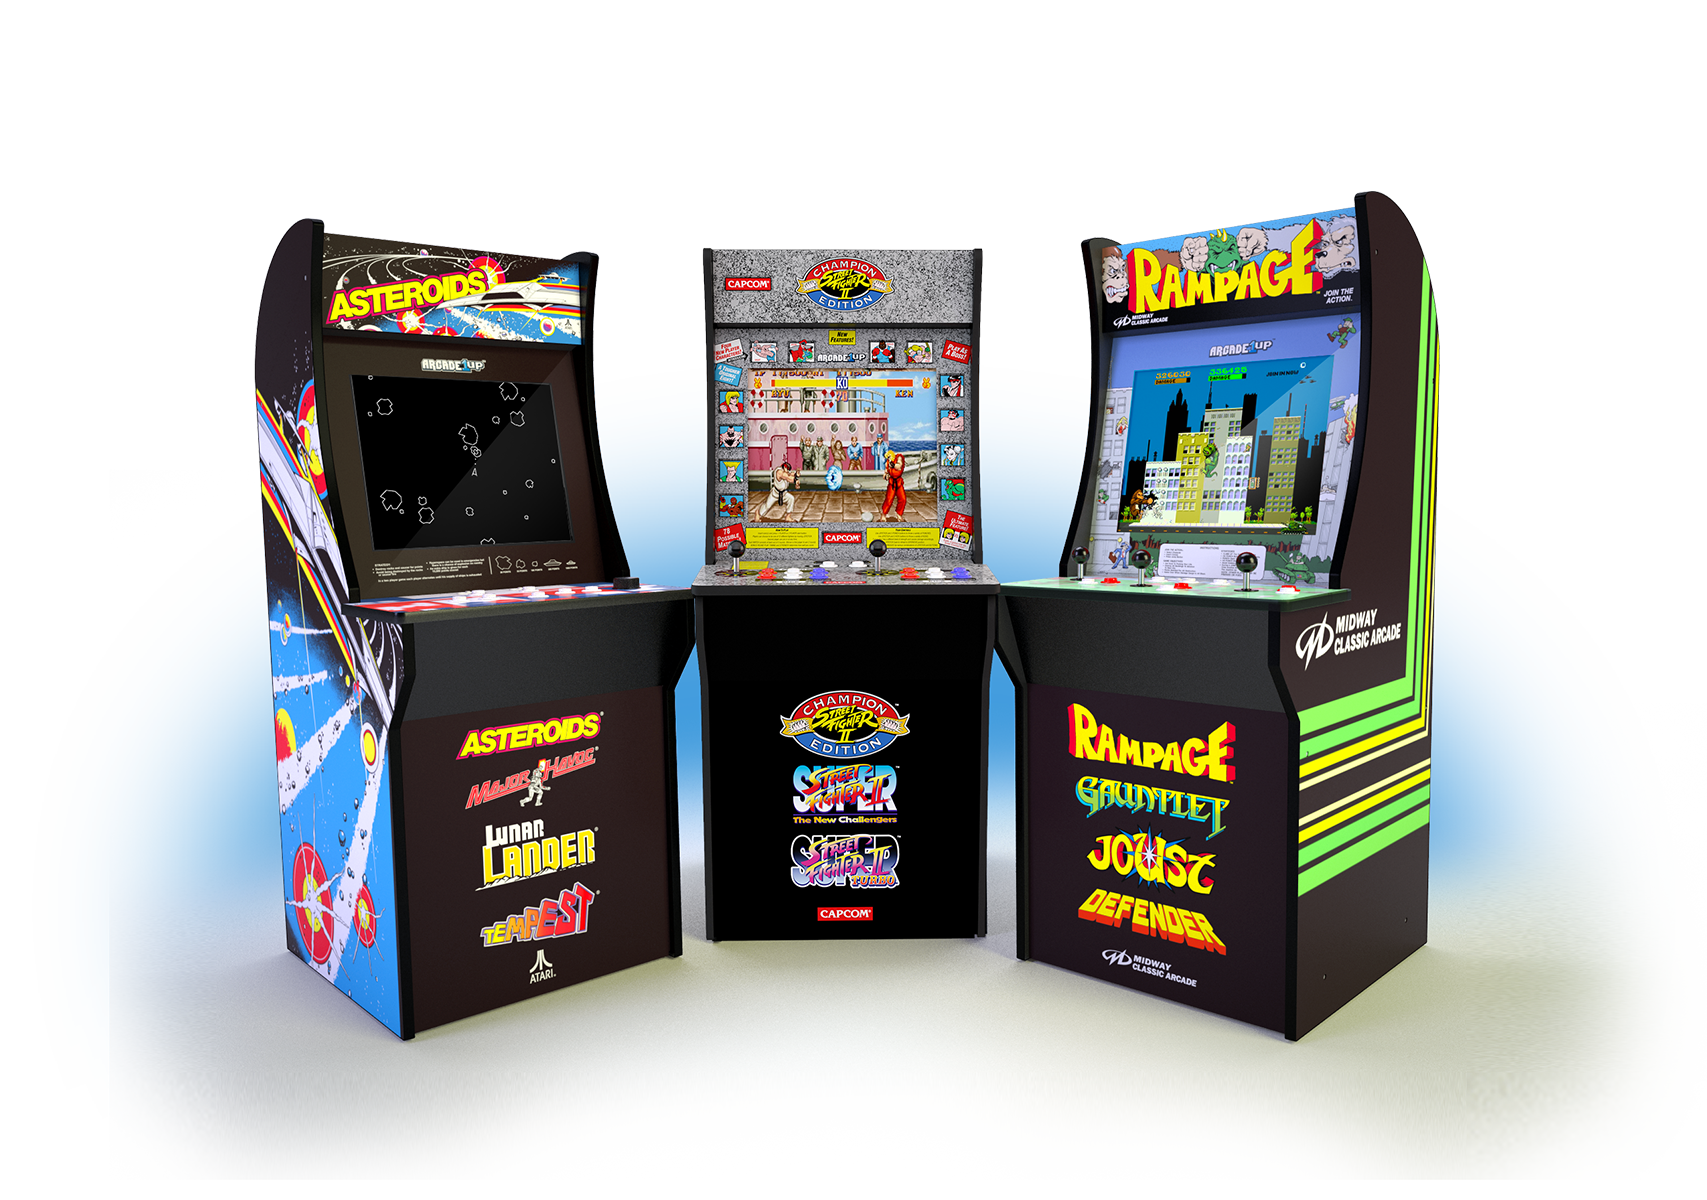 Games vector monitor. Arcade up classic for